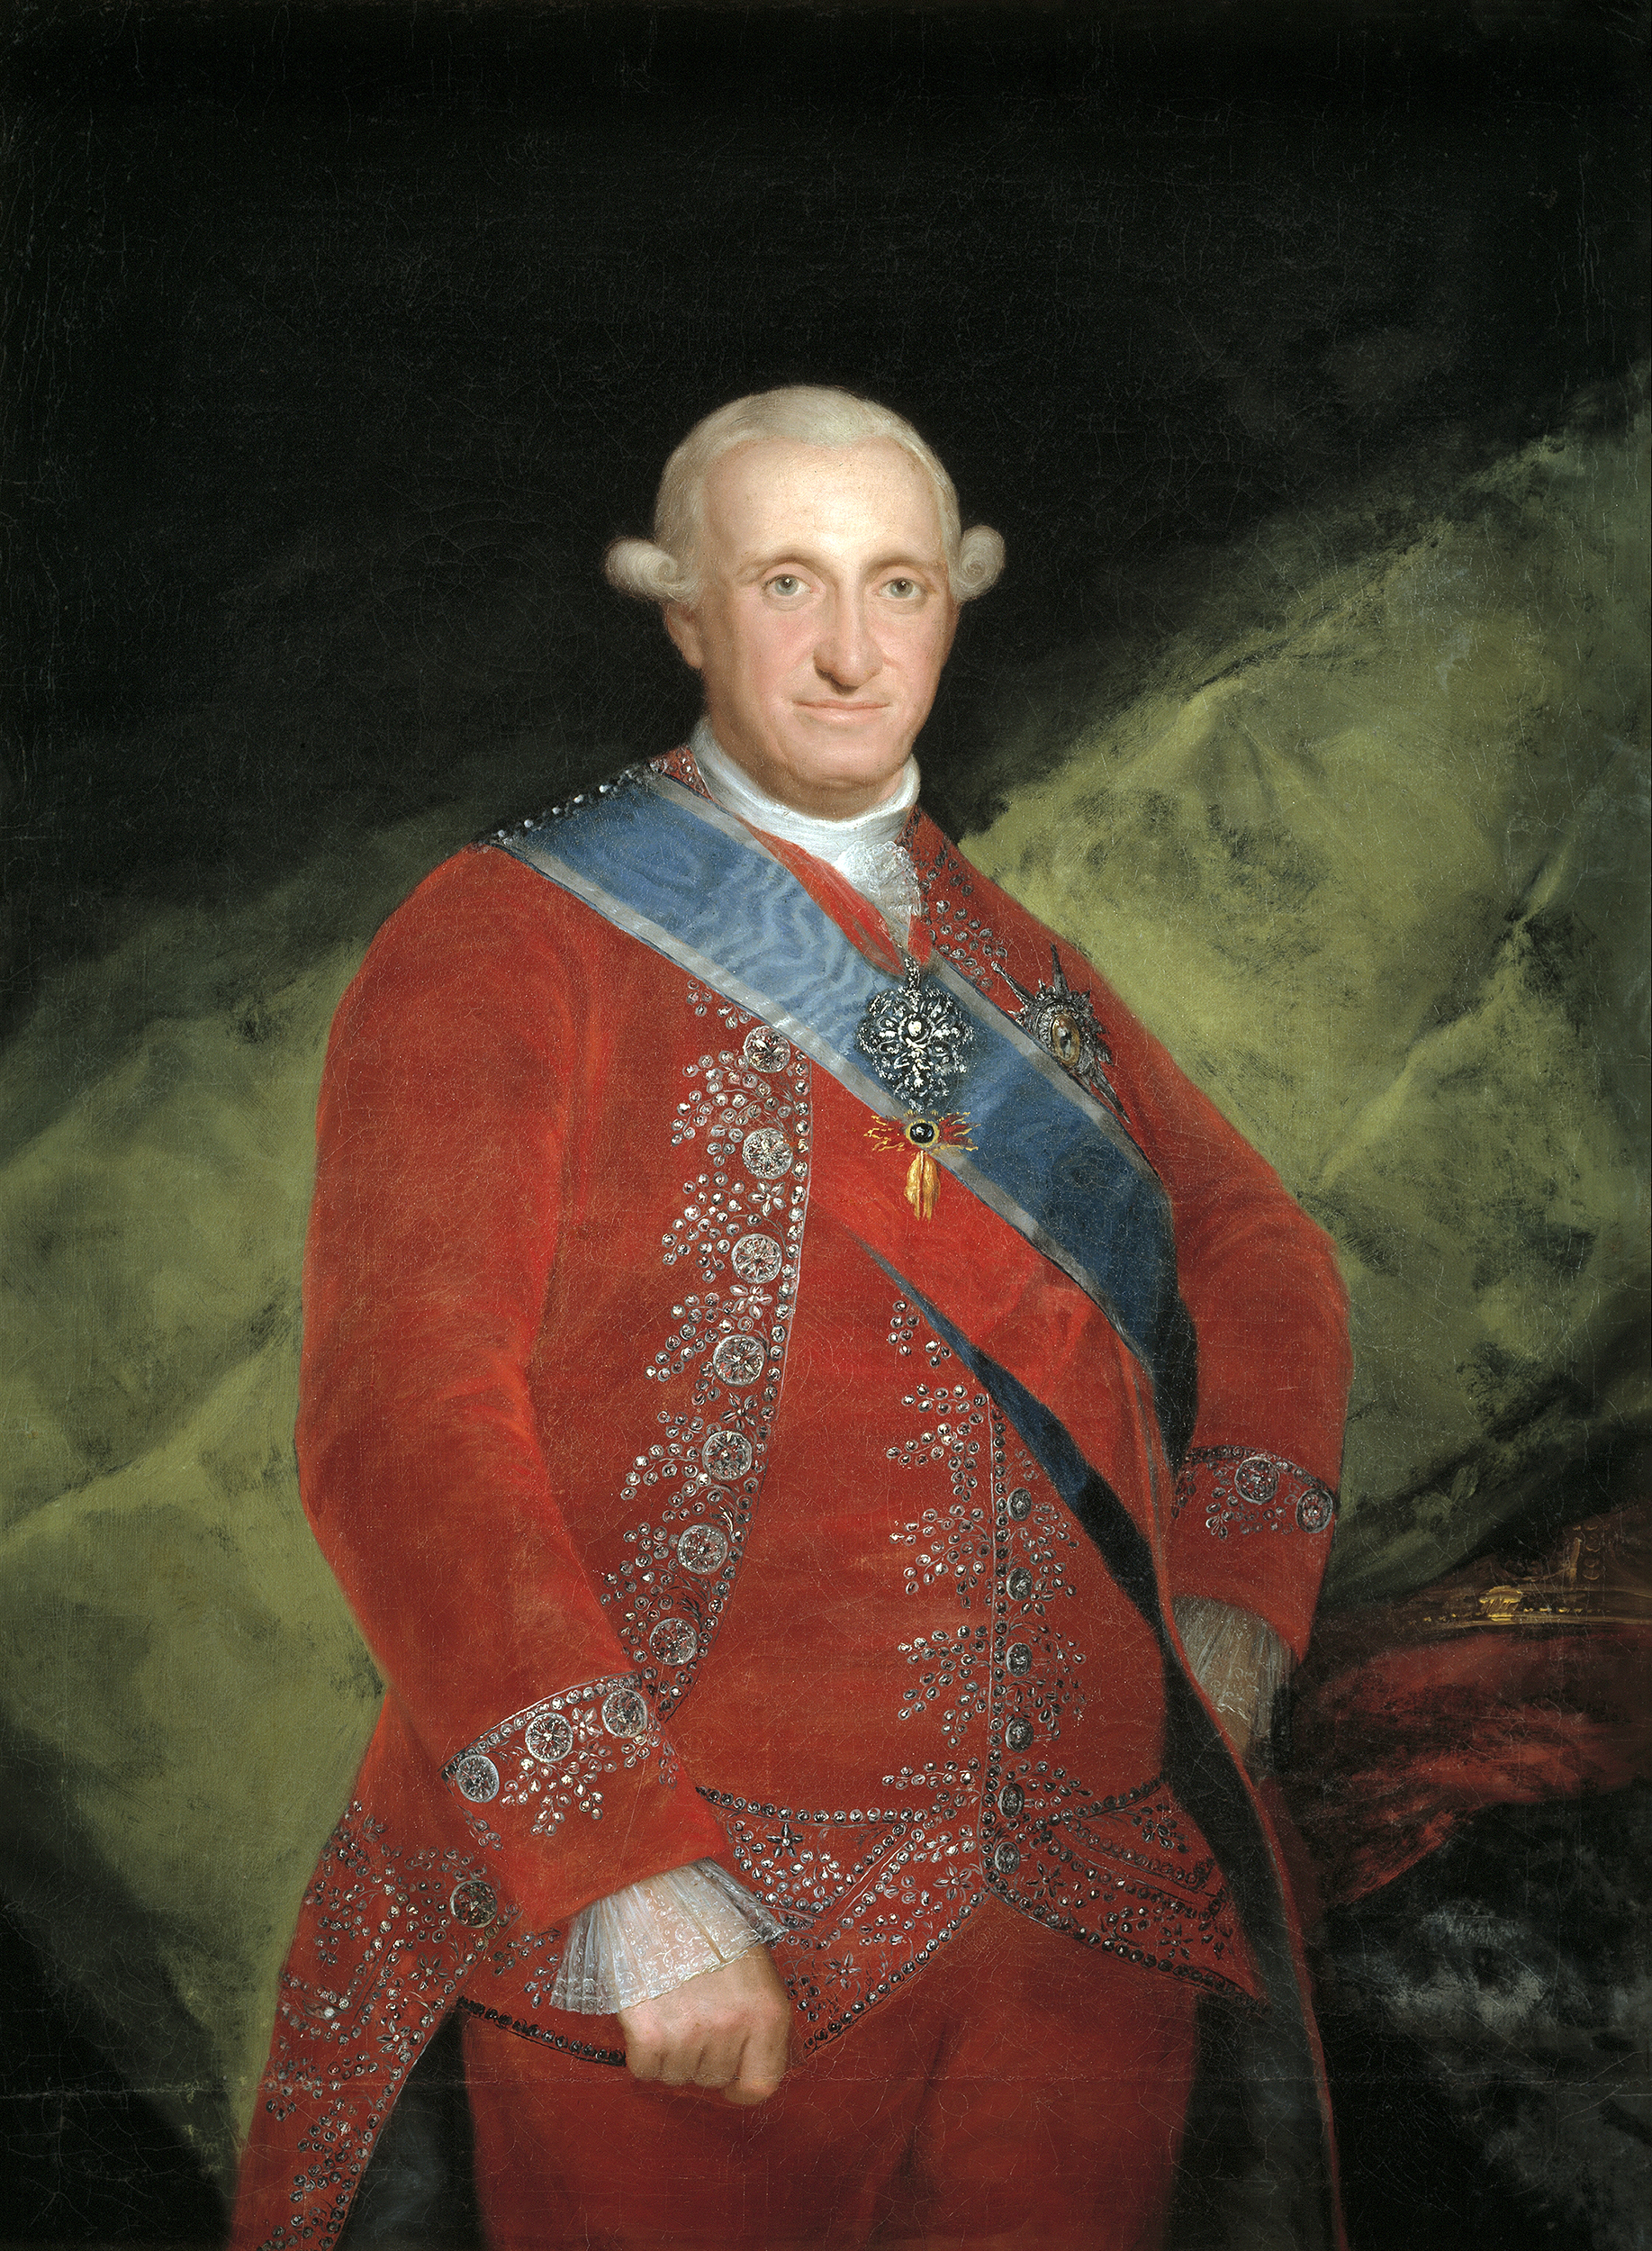 Portrait of Charles IV (1748-1819), King of Spain (1788-1808), Prince of Asturias (1759-1788), 1789 | Portraits of Kings